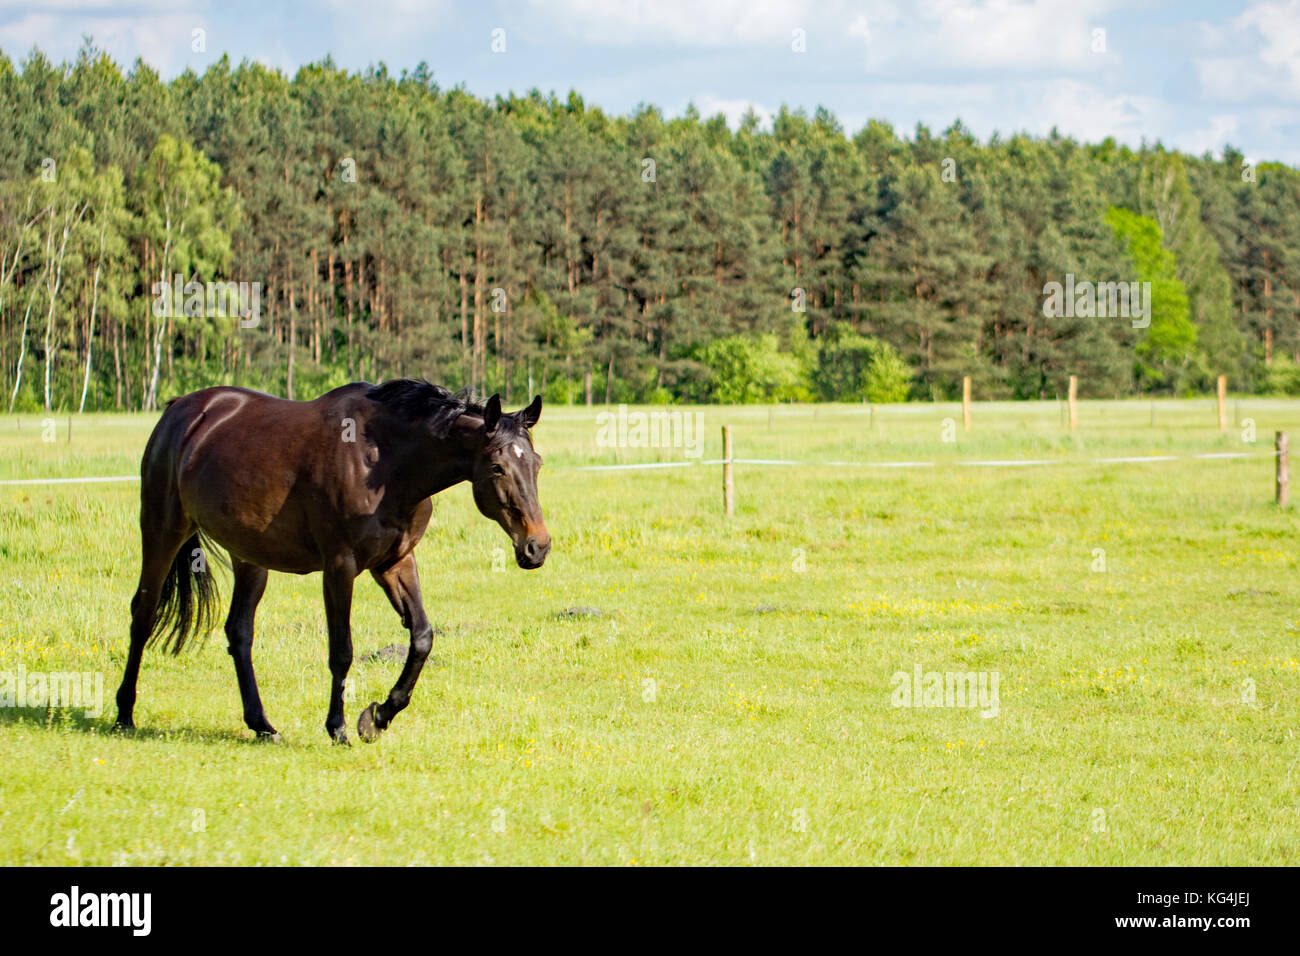 Beautiful dark bay horse walking on a meadow - Stock Image